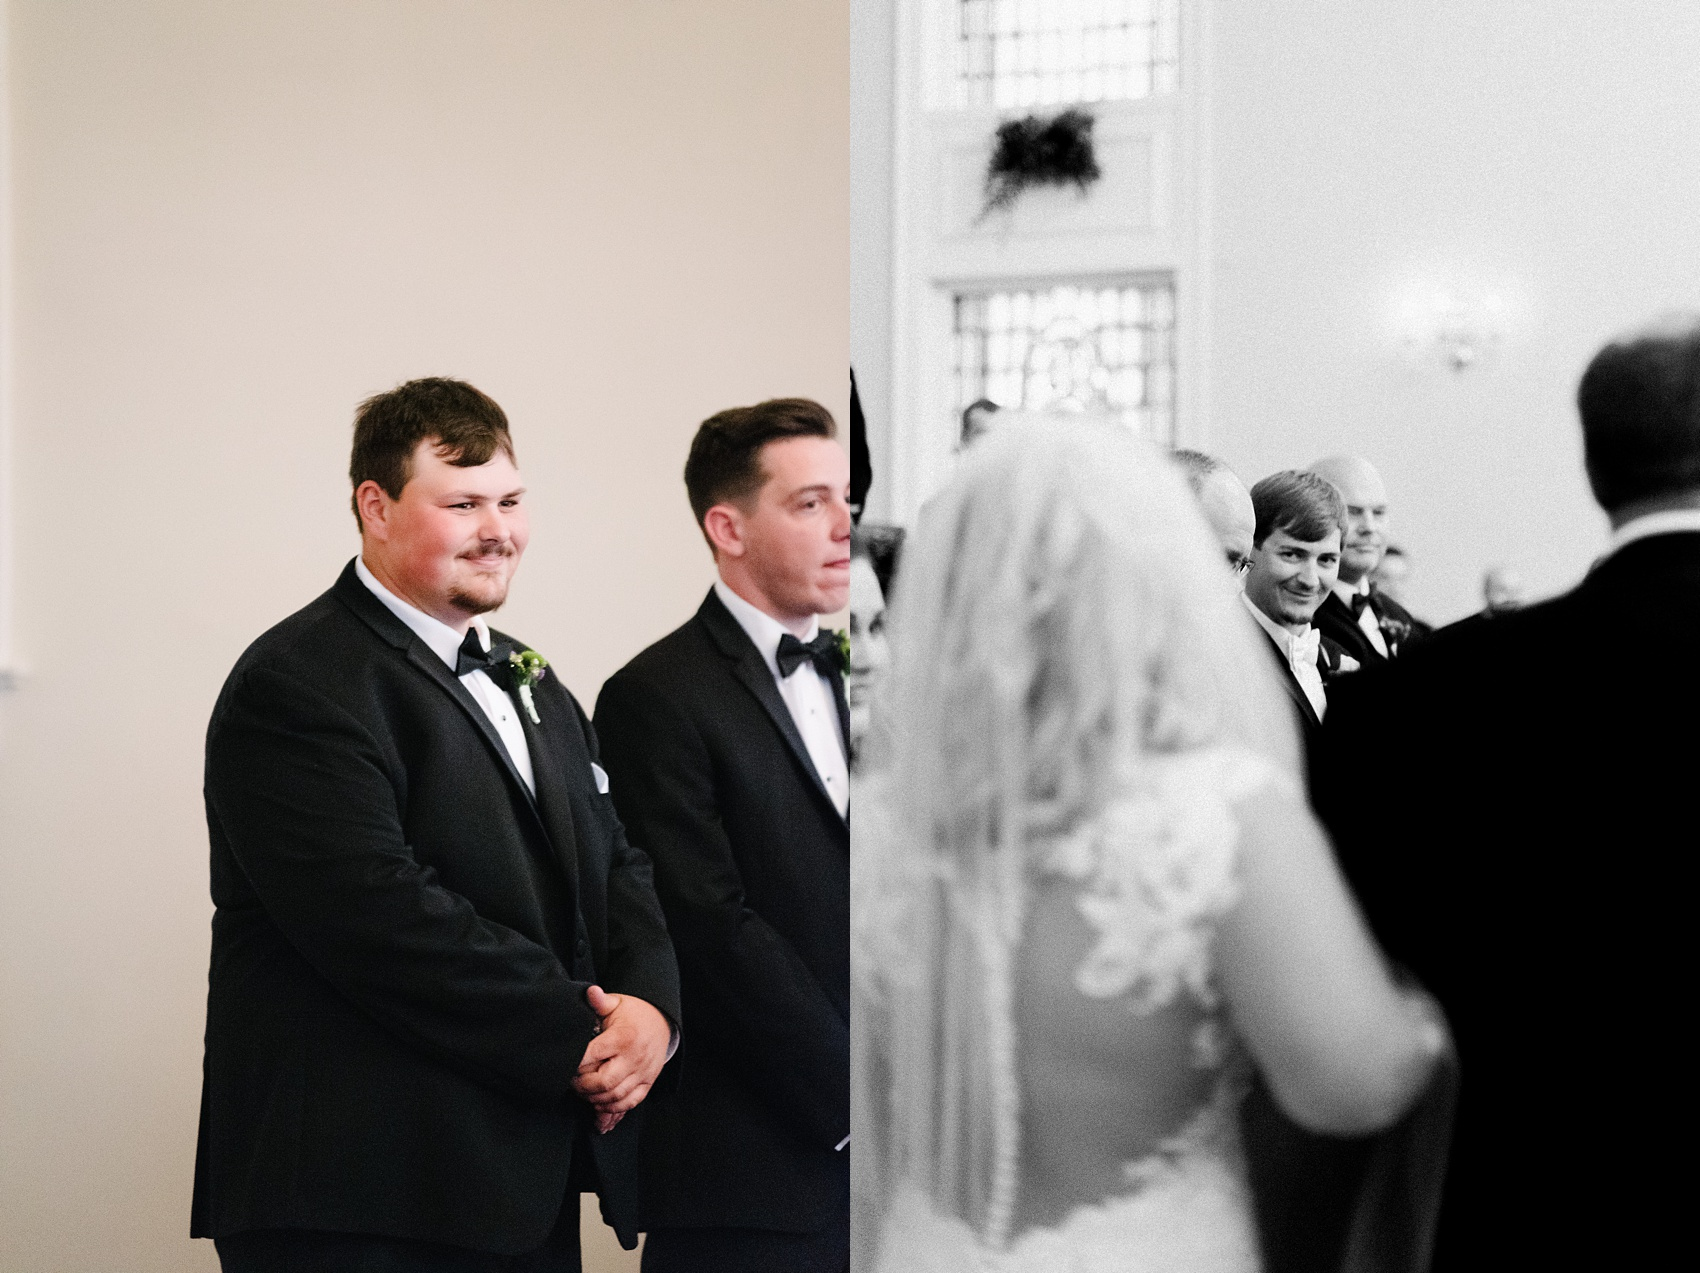 aiken_wedding_photographer_5447.jpg